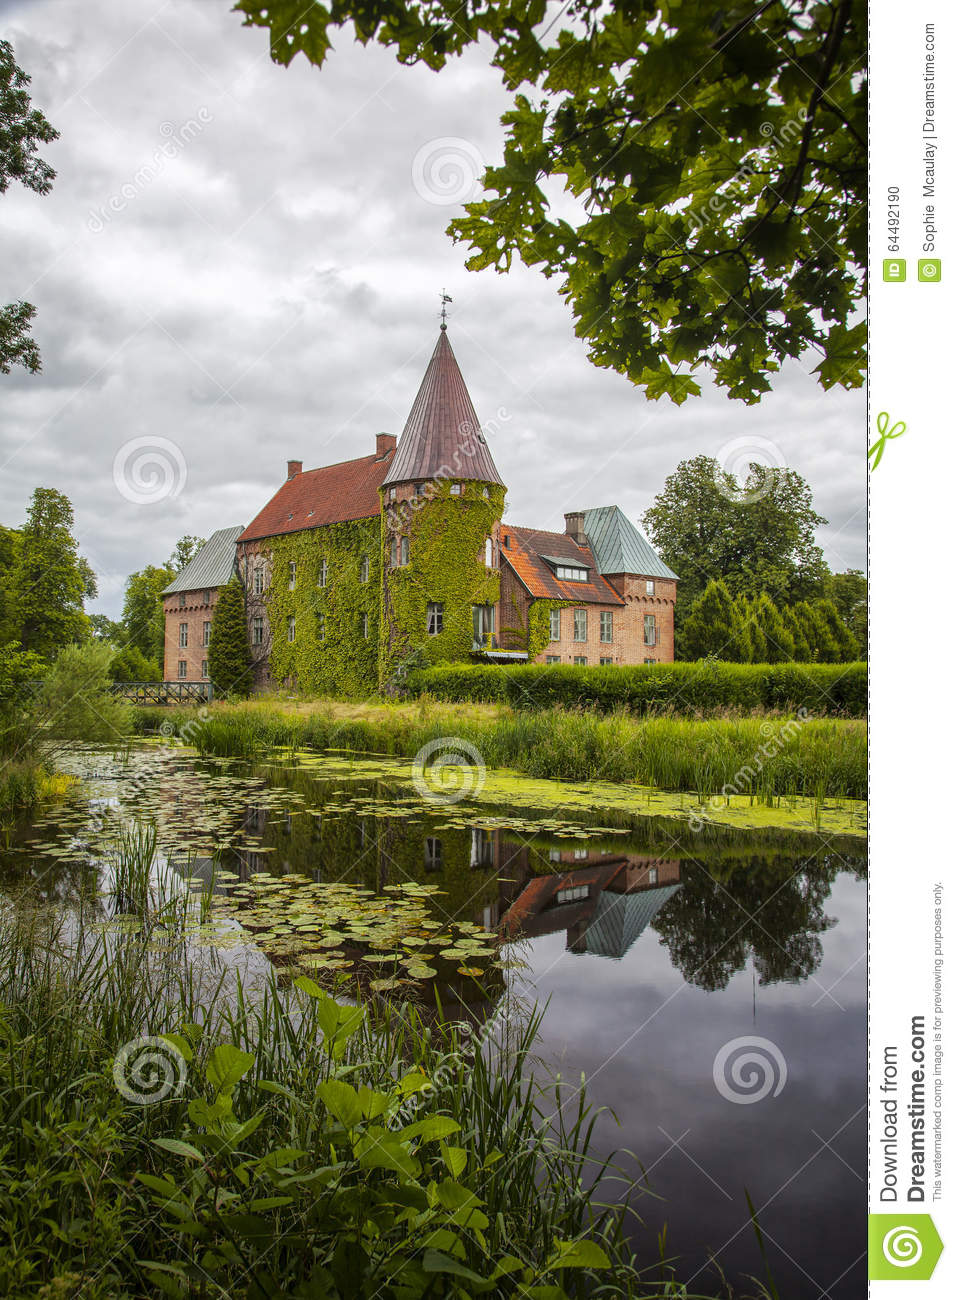 Download Ortofta castle and moat stock photo. Image of eslov, scandinavia - 64492190